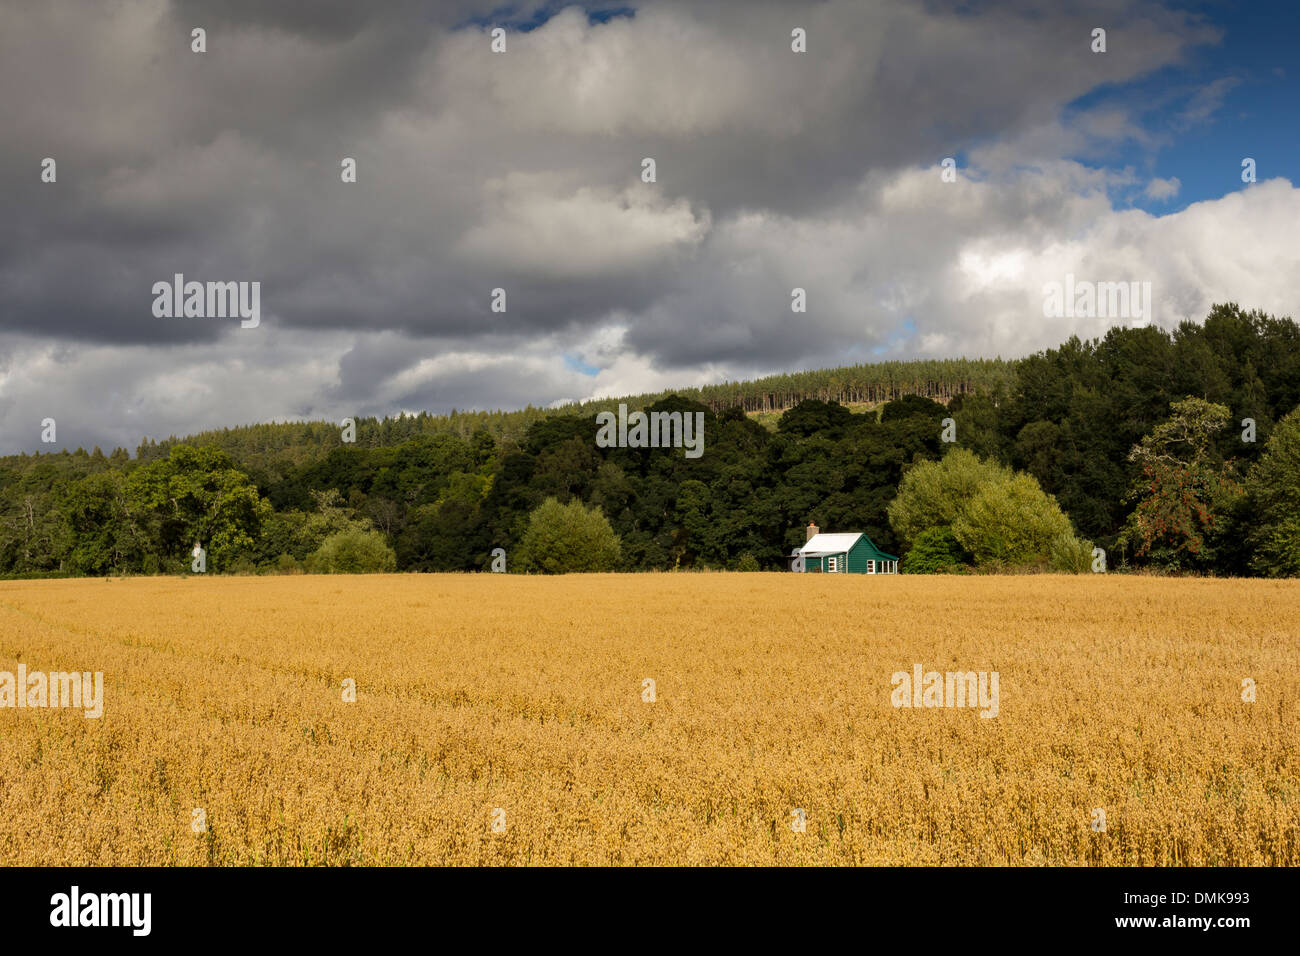 GREEN HUT IN THE CORNER OF A RIPENING OAT FIELD - Stock Image